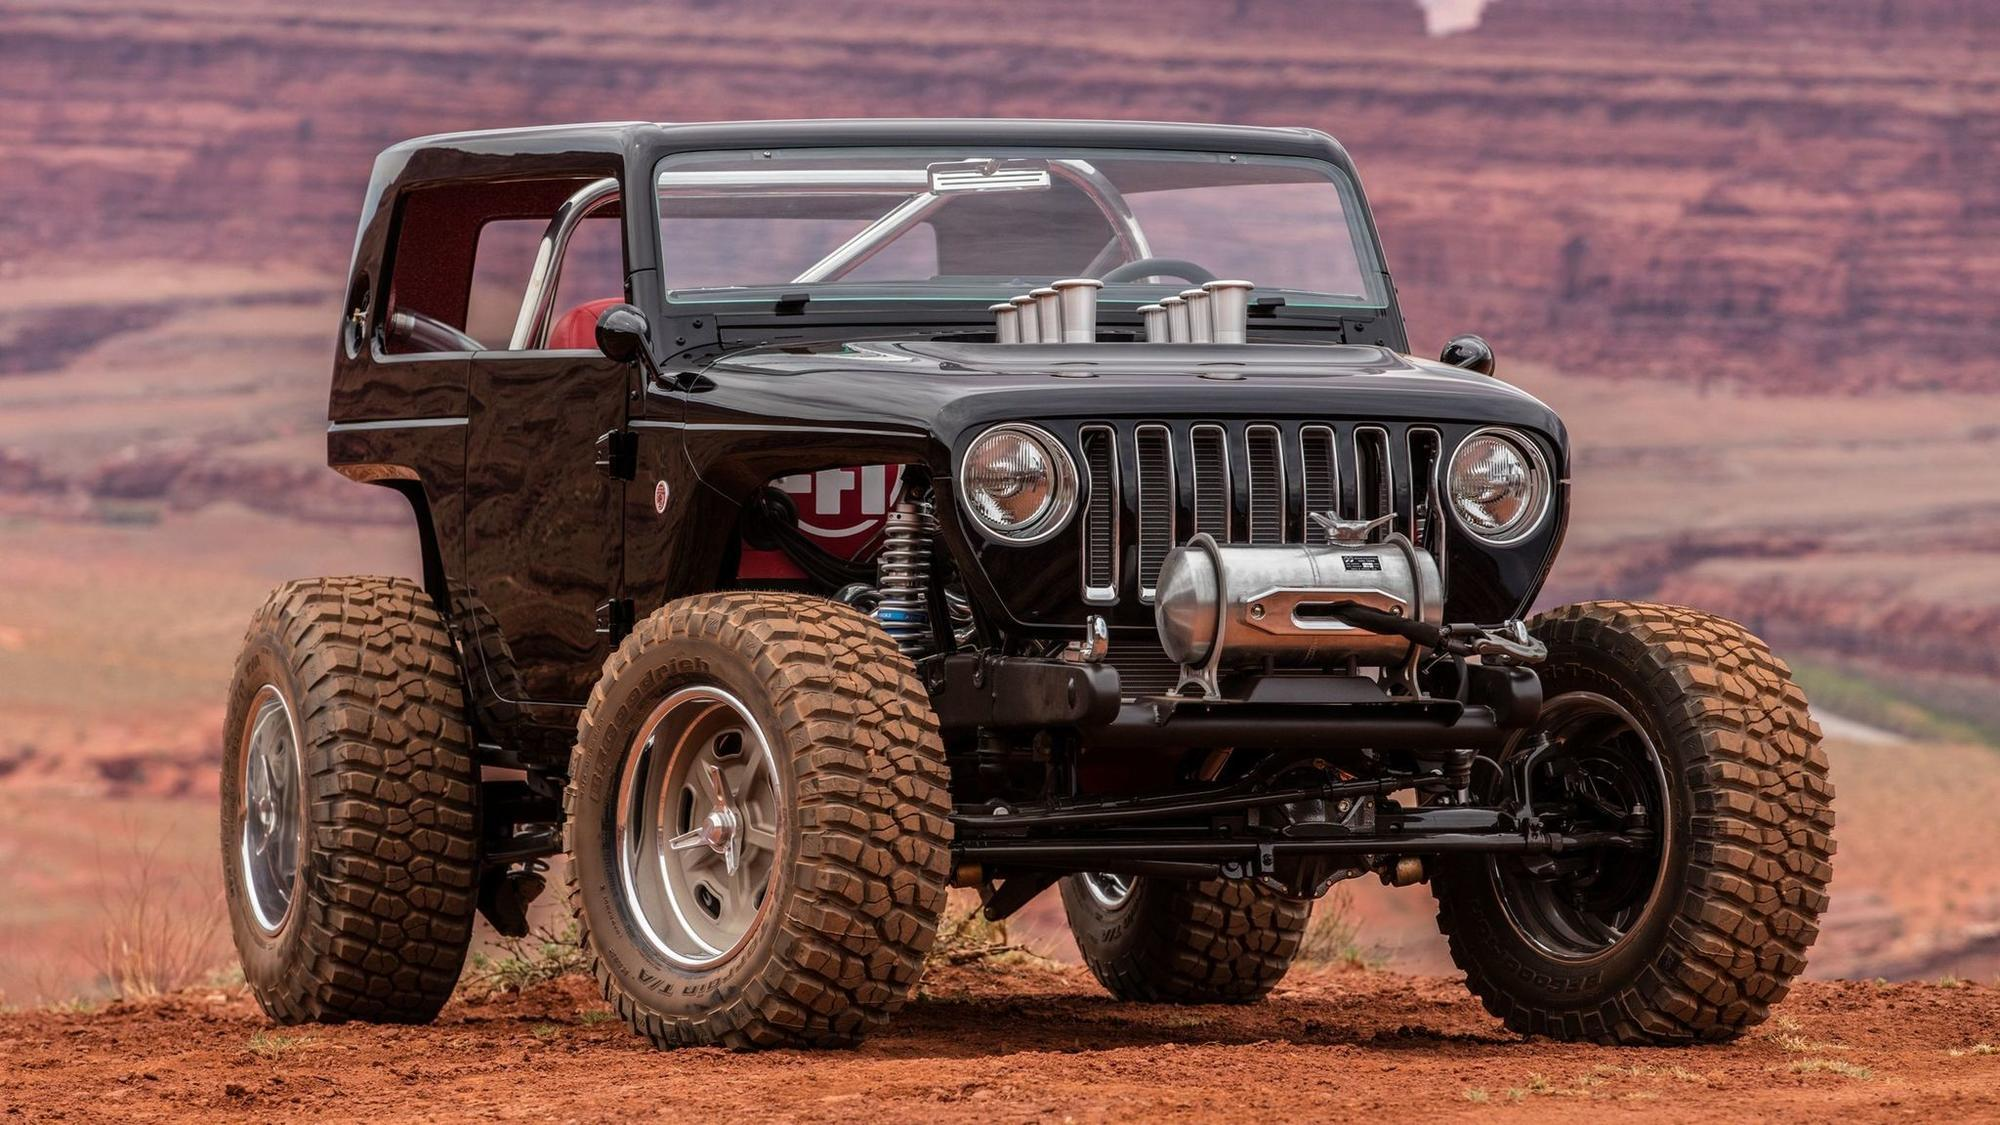 Jeep Quicksand rooster tail churning power The San Diego Union